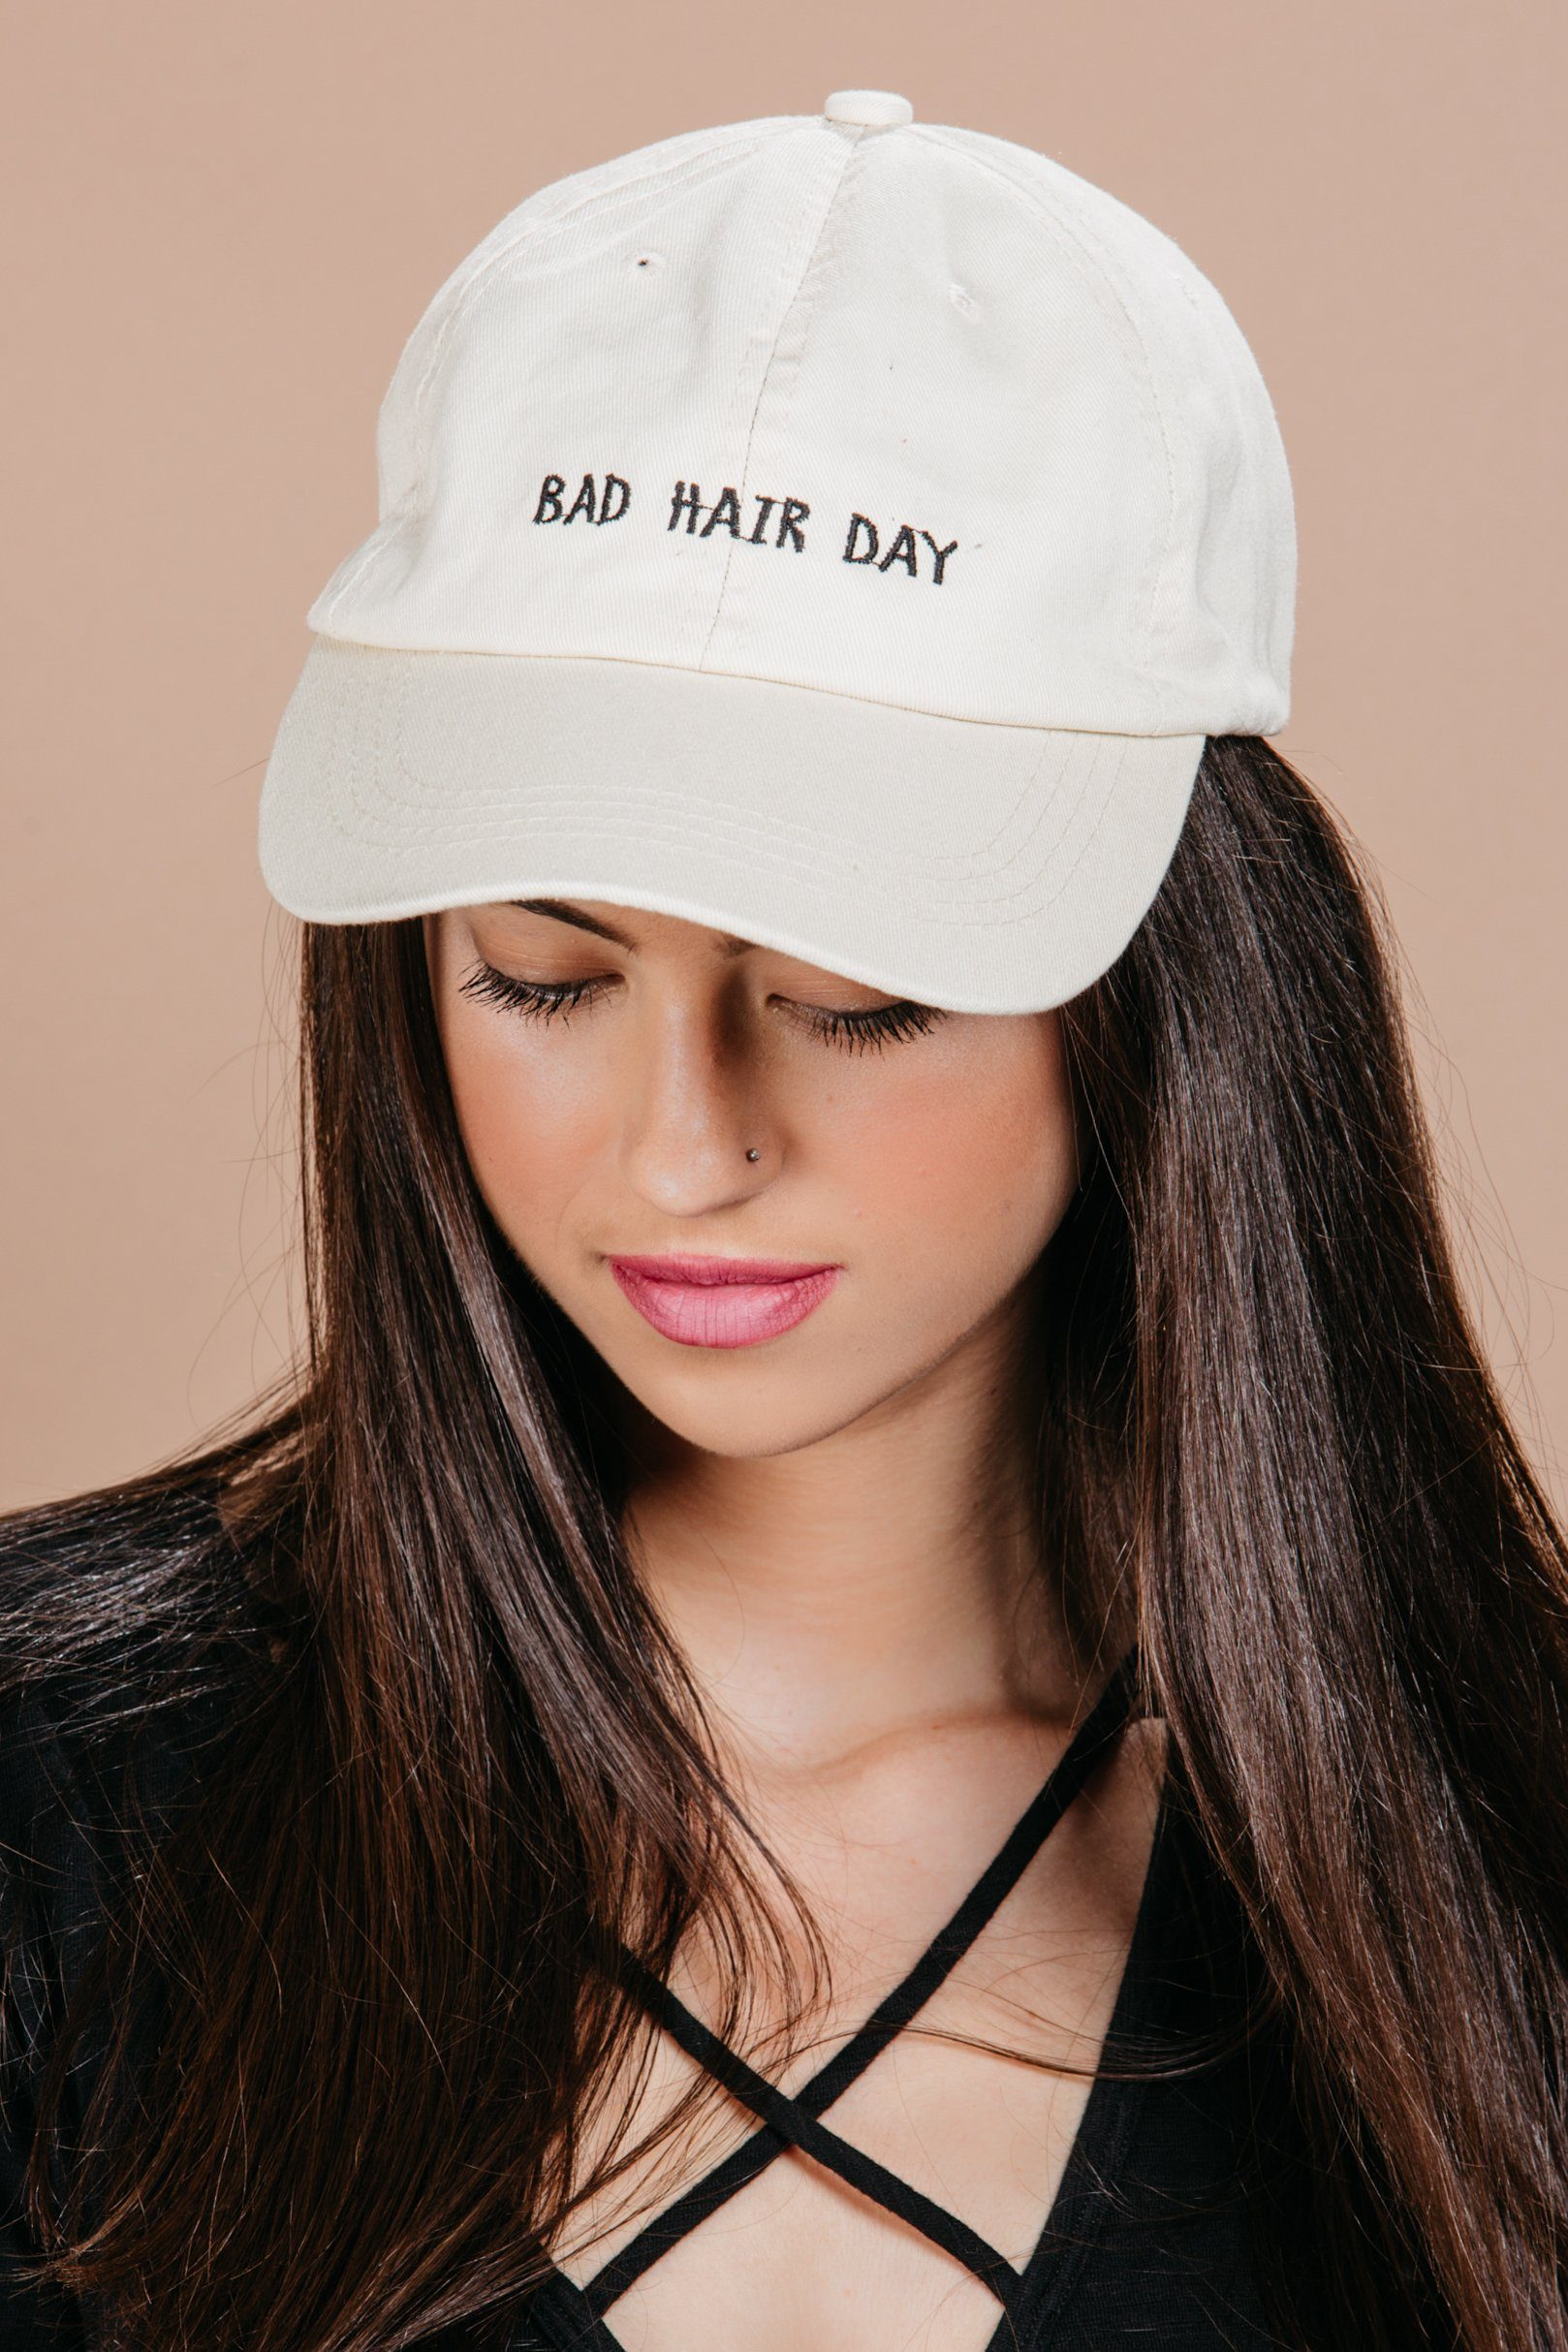 Bad Hair Day Cap- Accessories- Hats- Casual Caps- For Elyse 85a38b45473